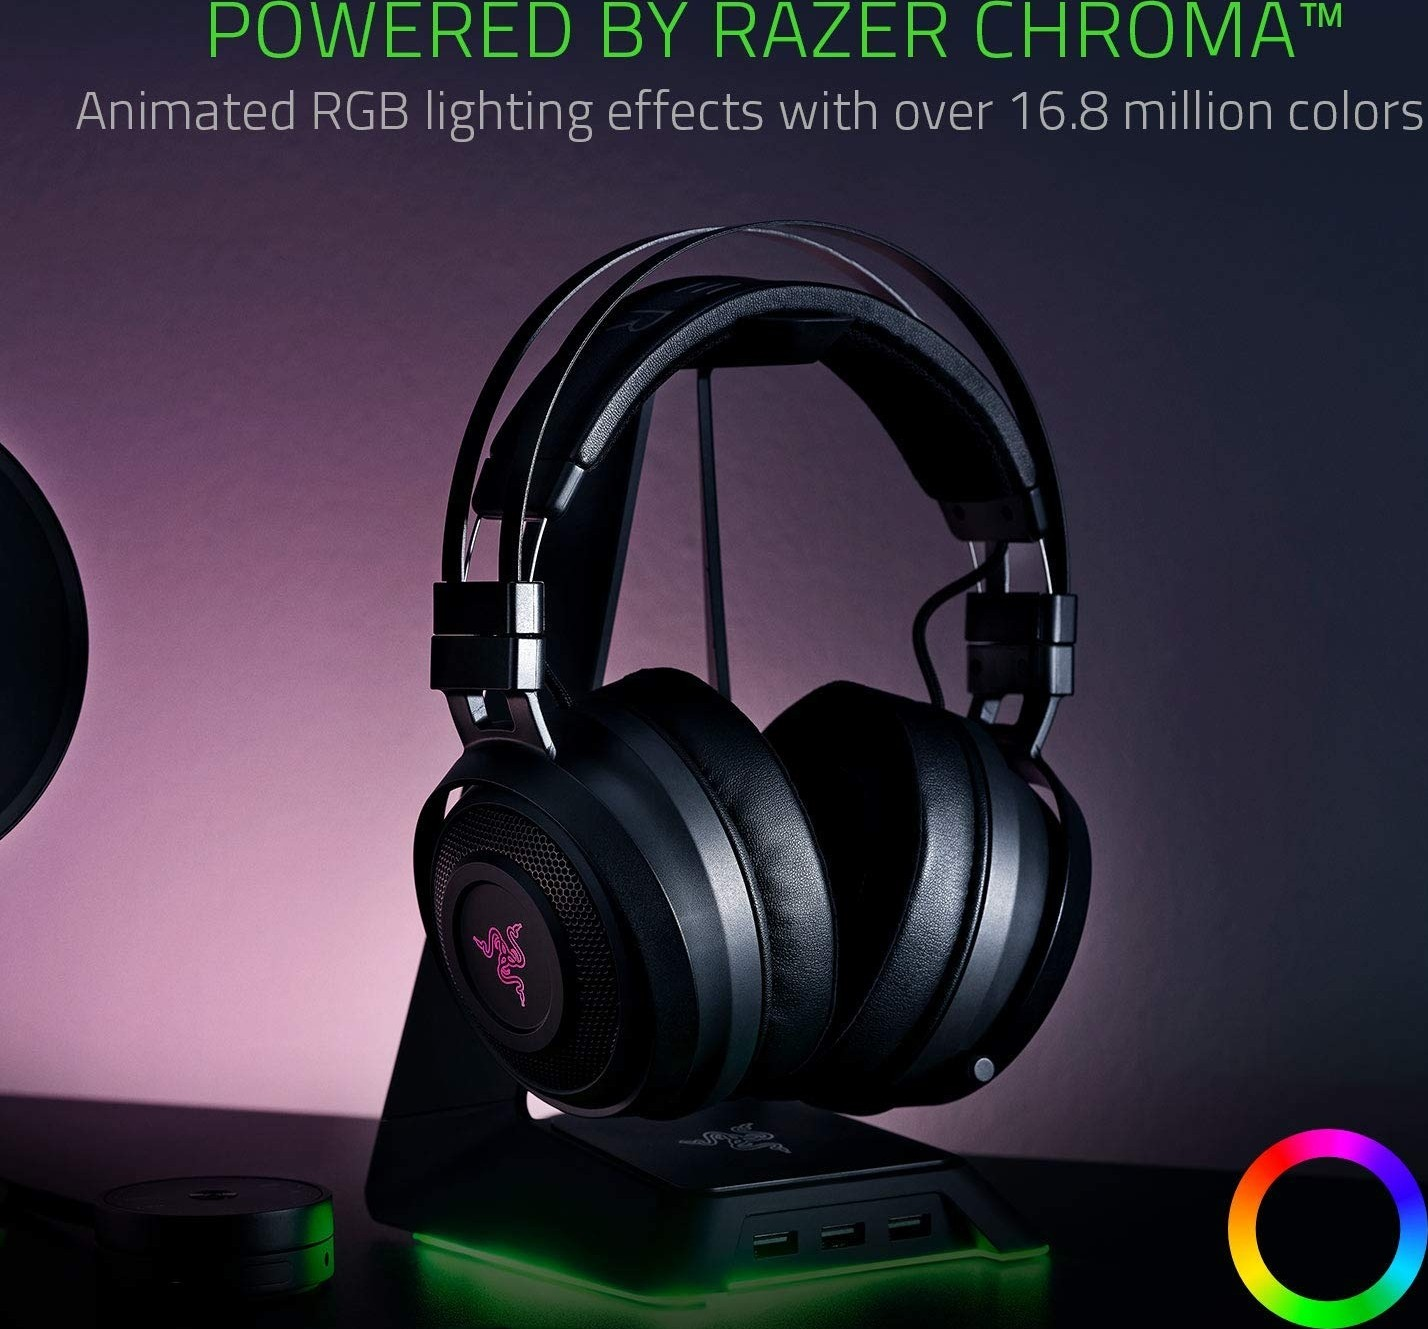 Razer Nari Thx Spatial Audio Cooling Gel Infused Cushions 2 4Ghz Wireless  Audio Mic With Game